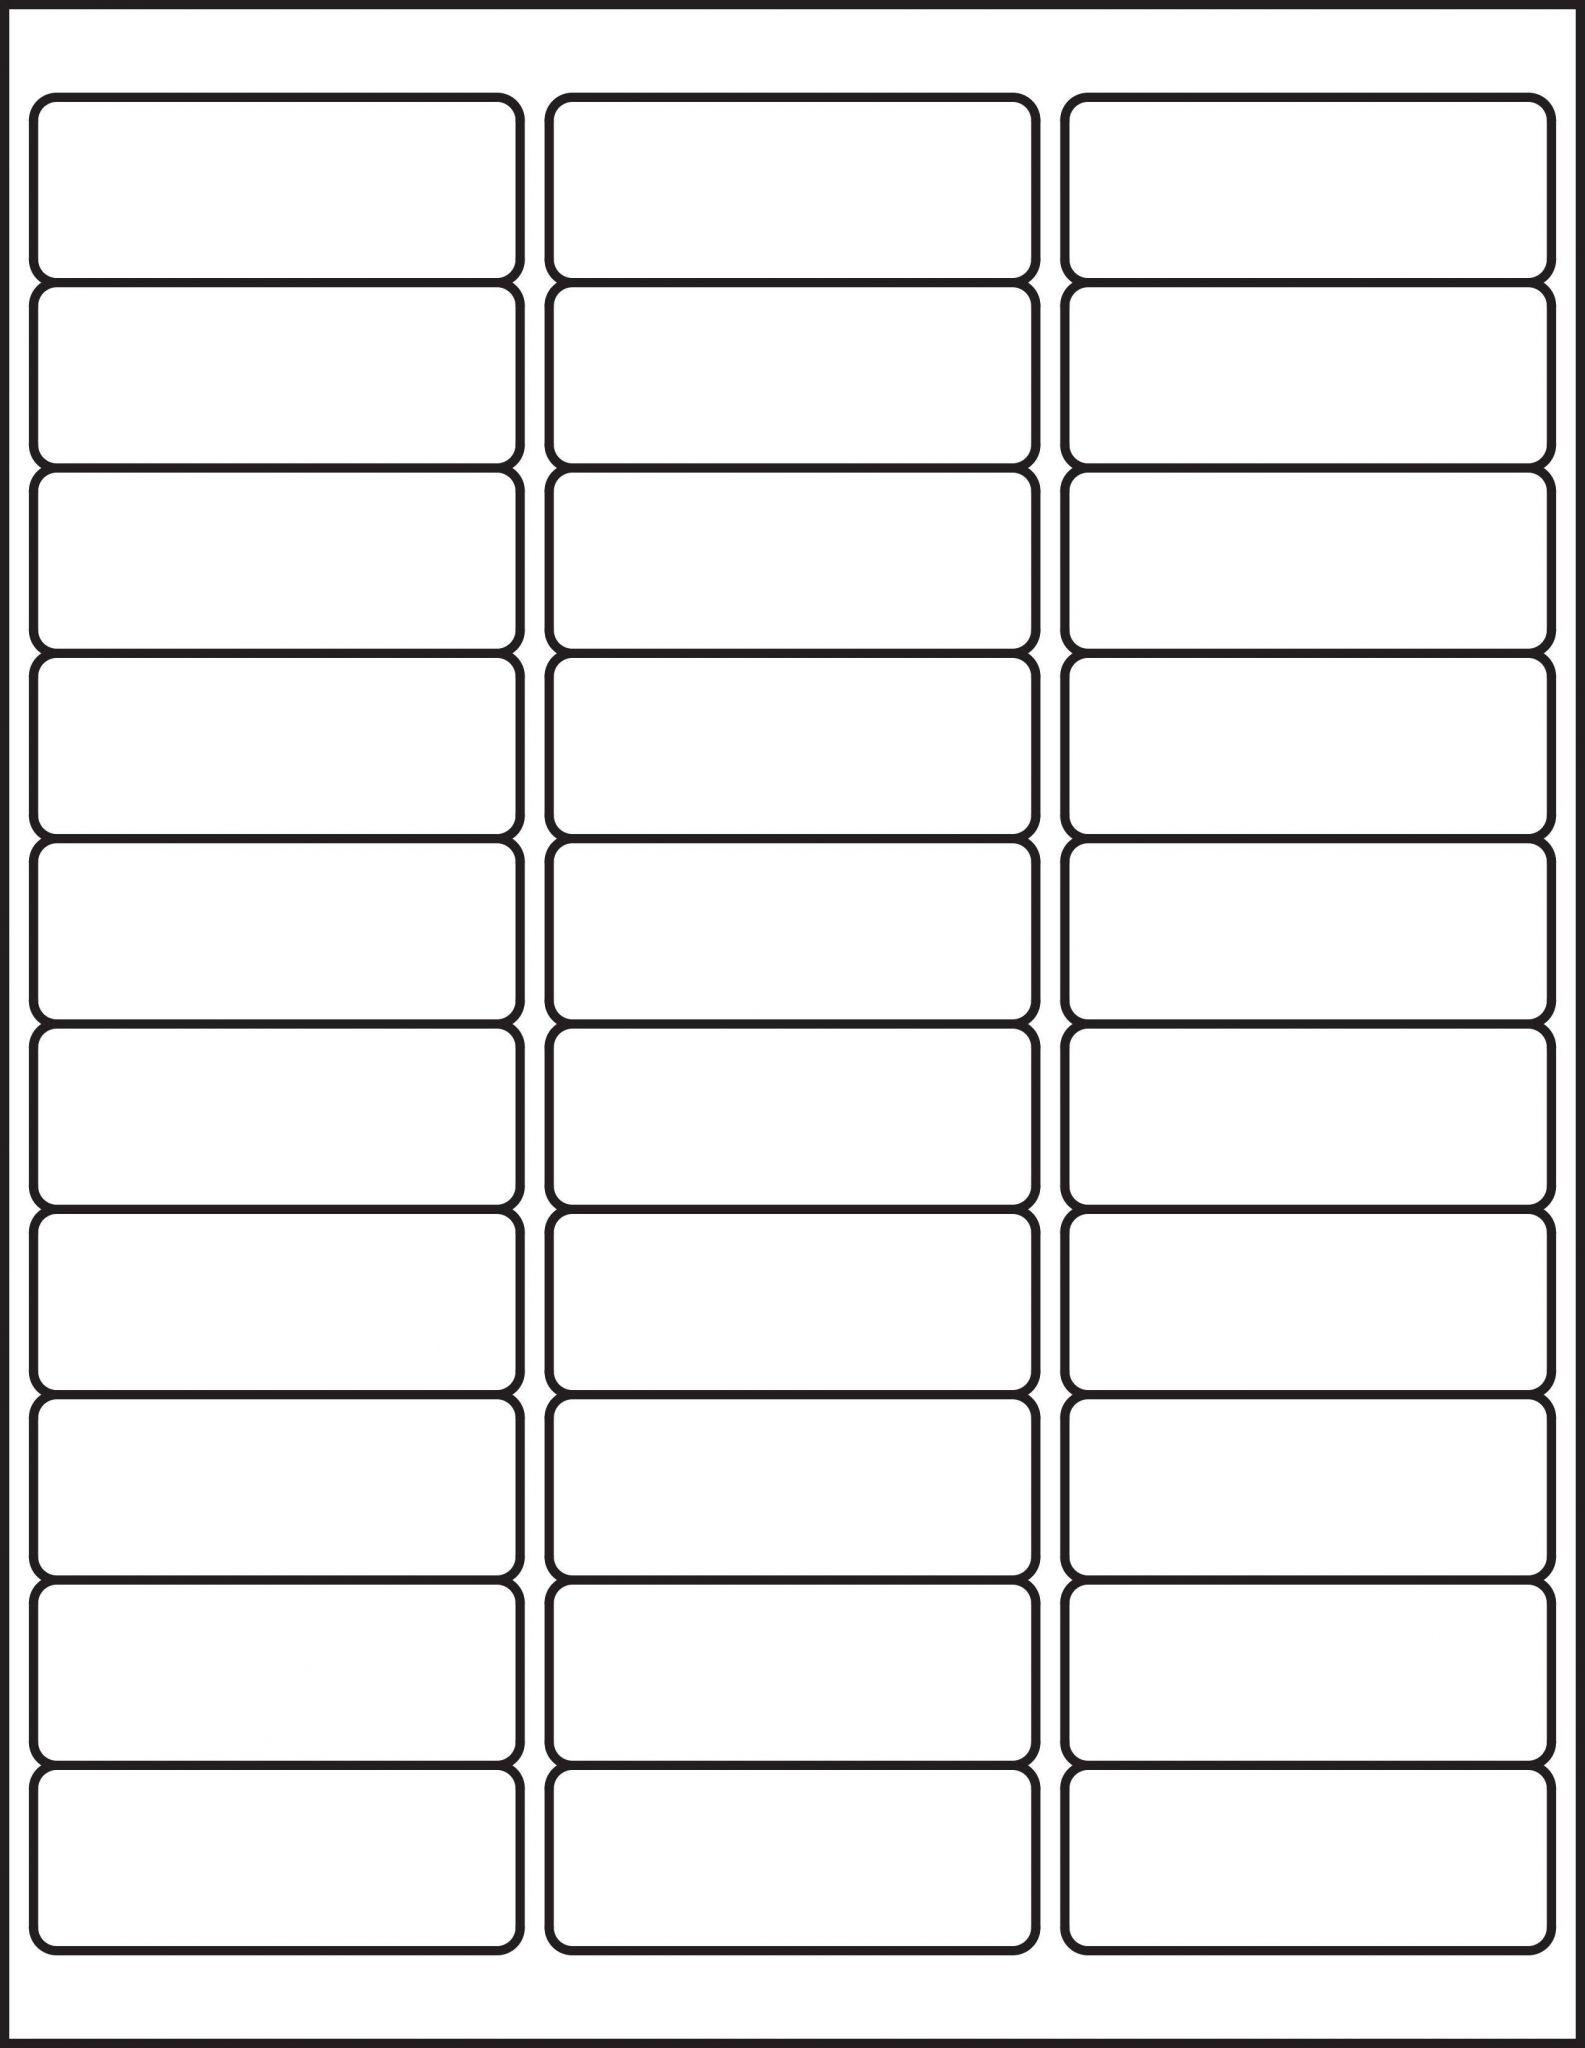 Avery Template For Labels 5160